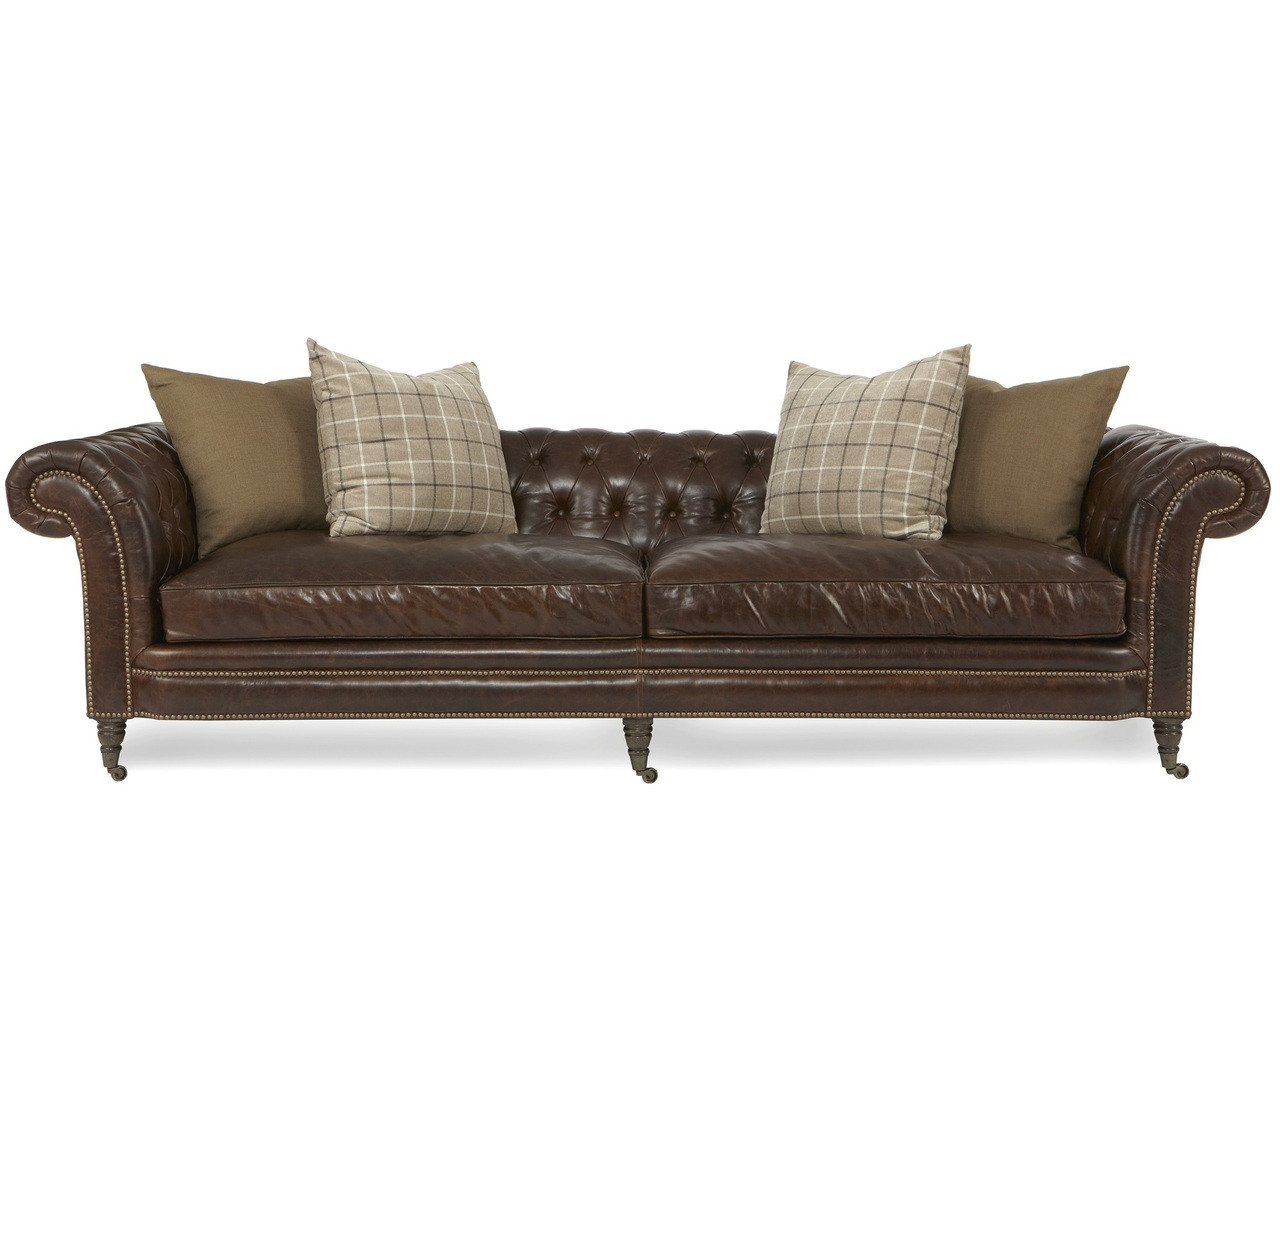 Lauren Cigar Club Tufted Leather Chesterfield Sofa With Nailhead ...